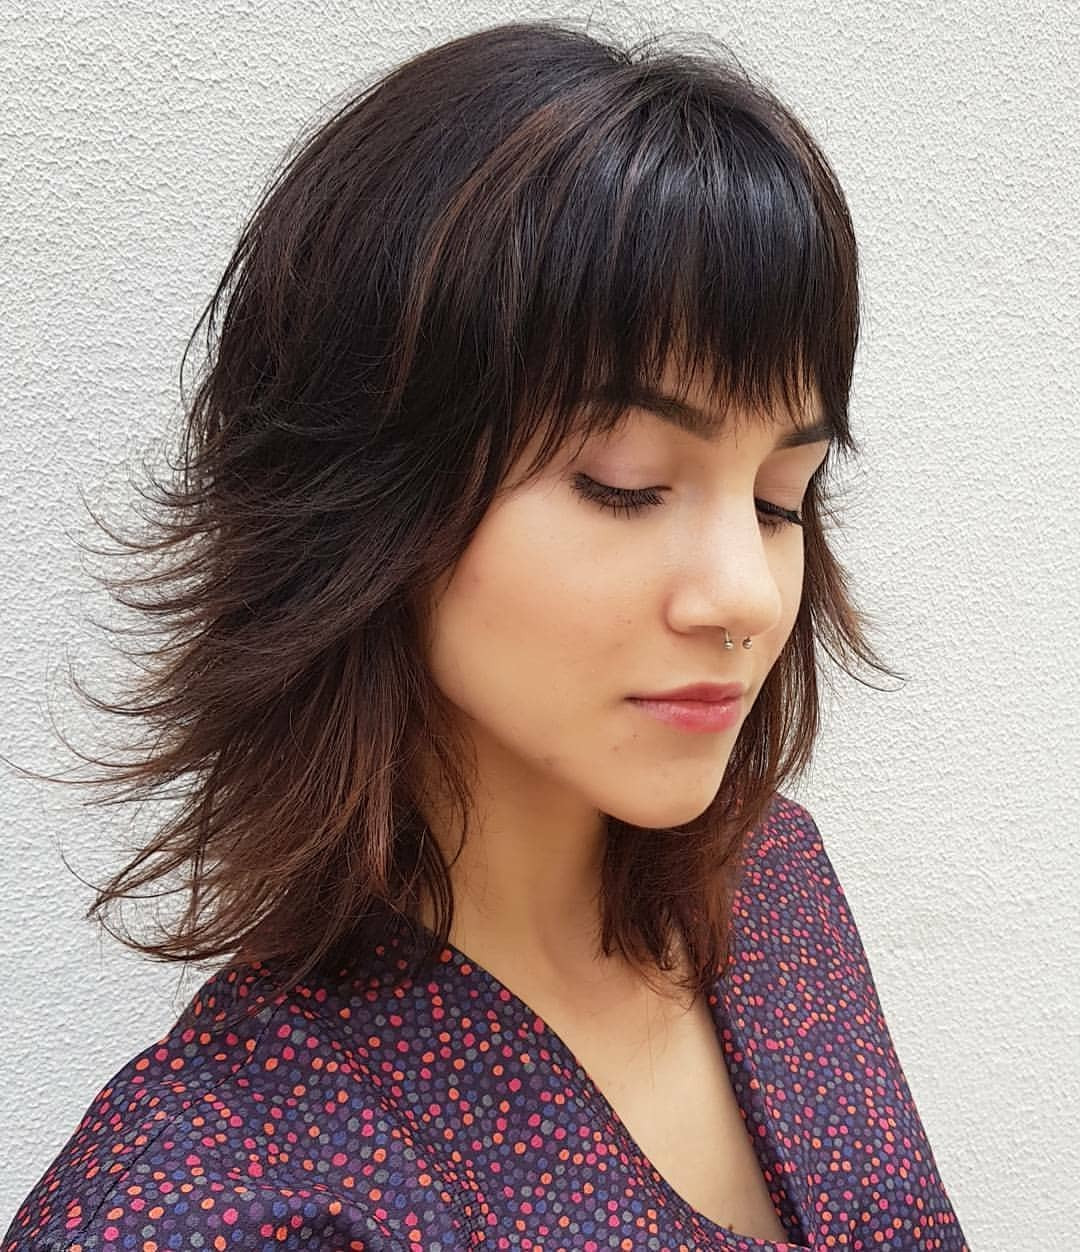 Best ideas about Easy To Style Haircuts . Save or Pin 10 Super Cute and Easy Medium Hairstyles 2019 Now.